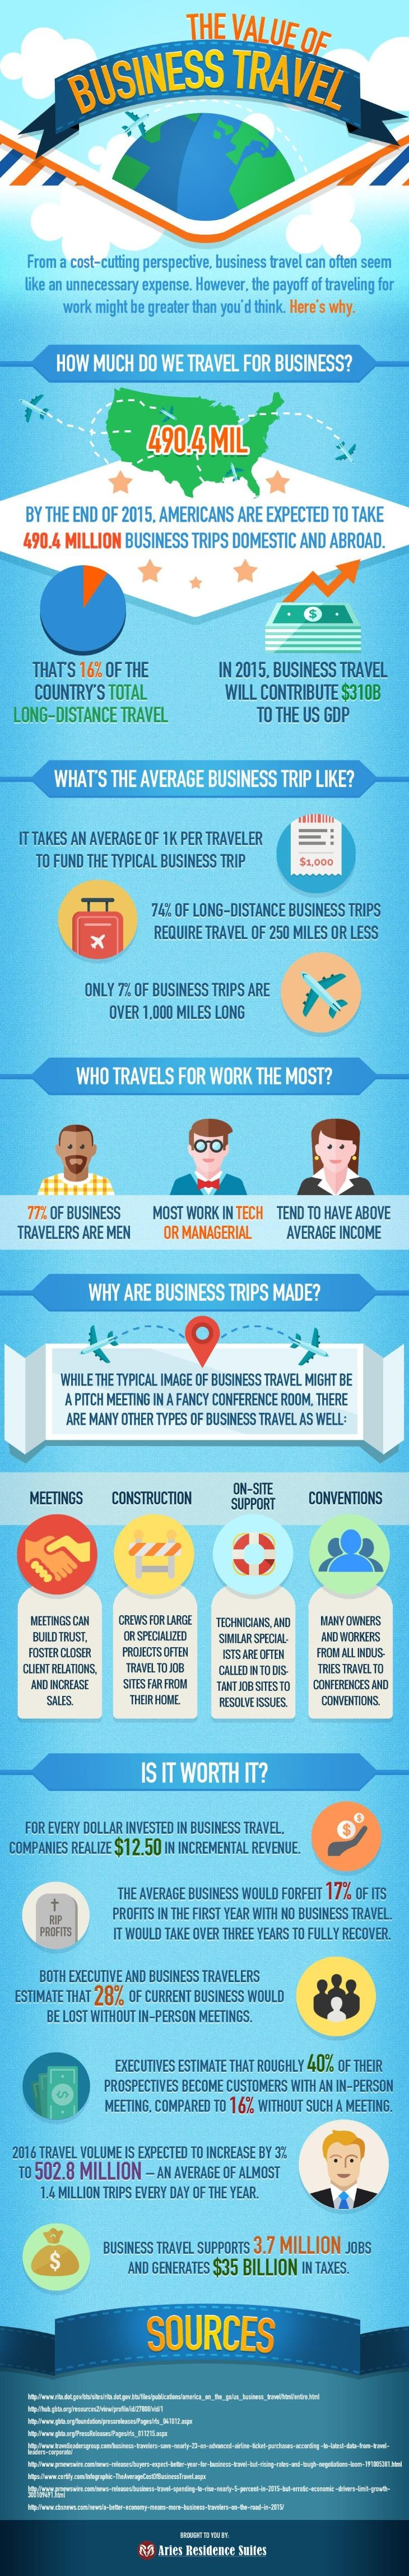 Value Business Travel